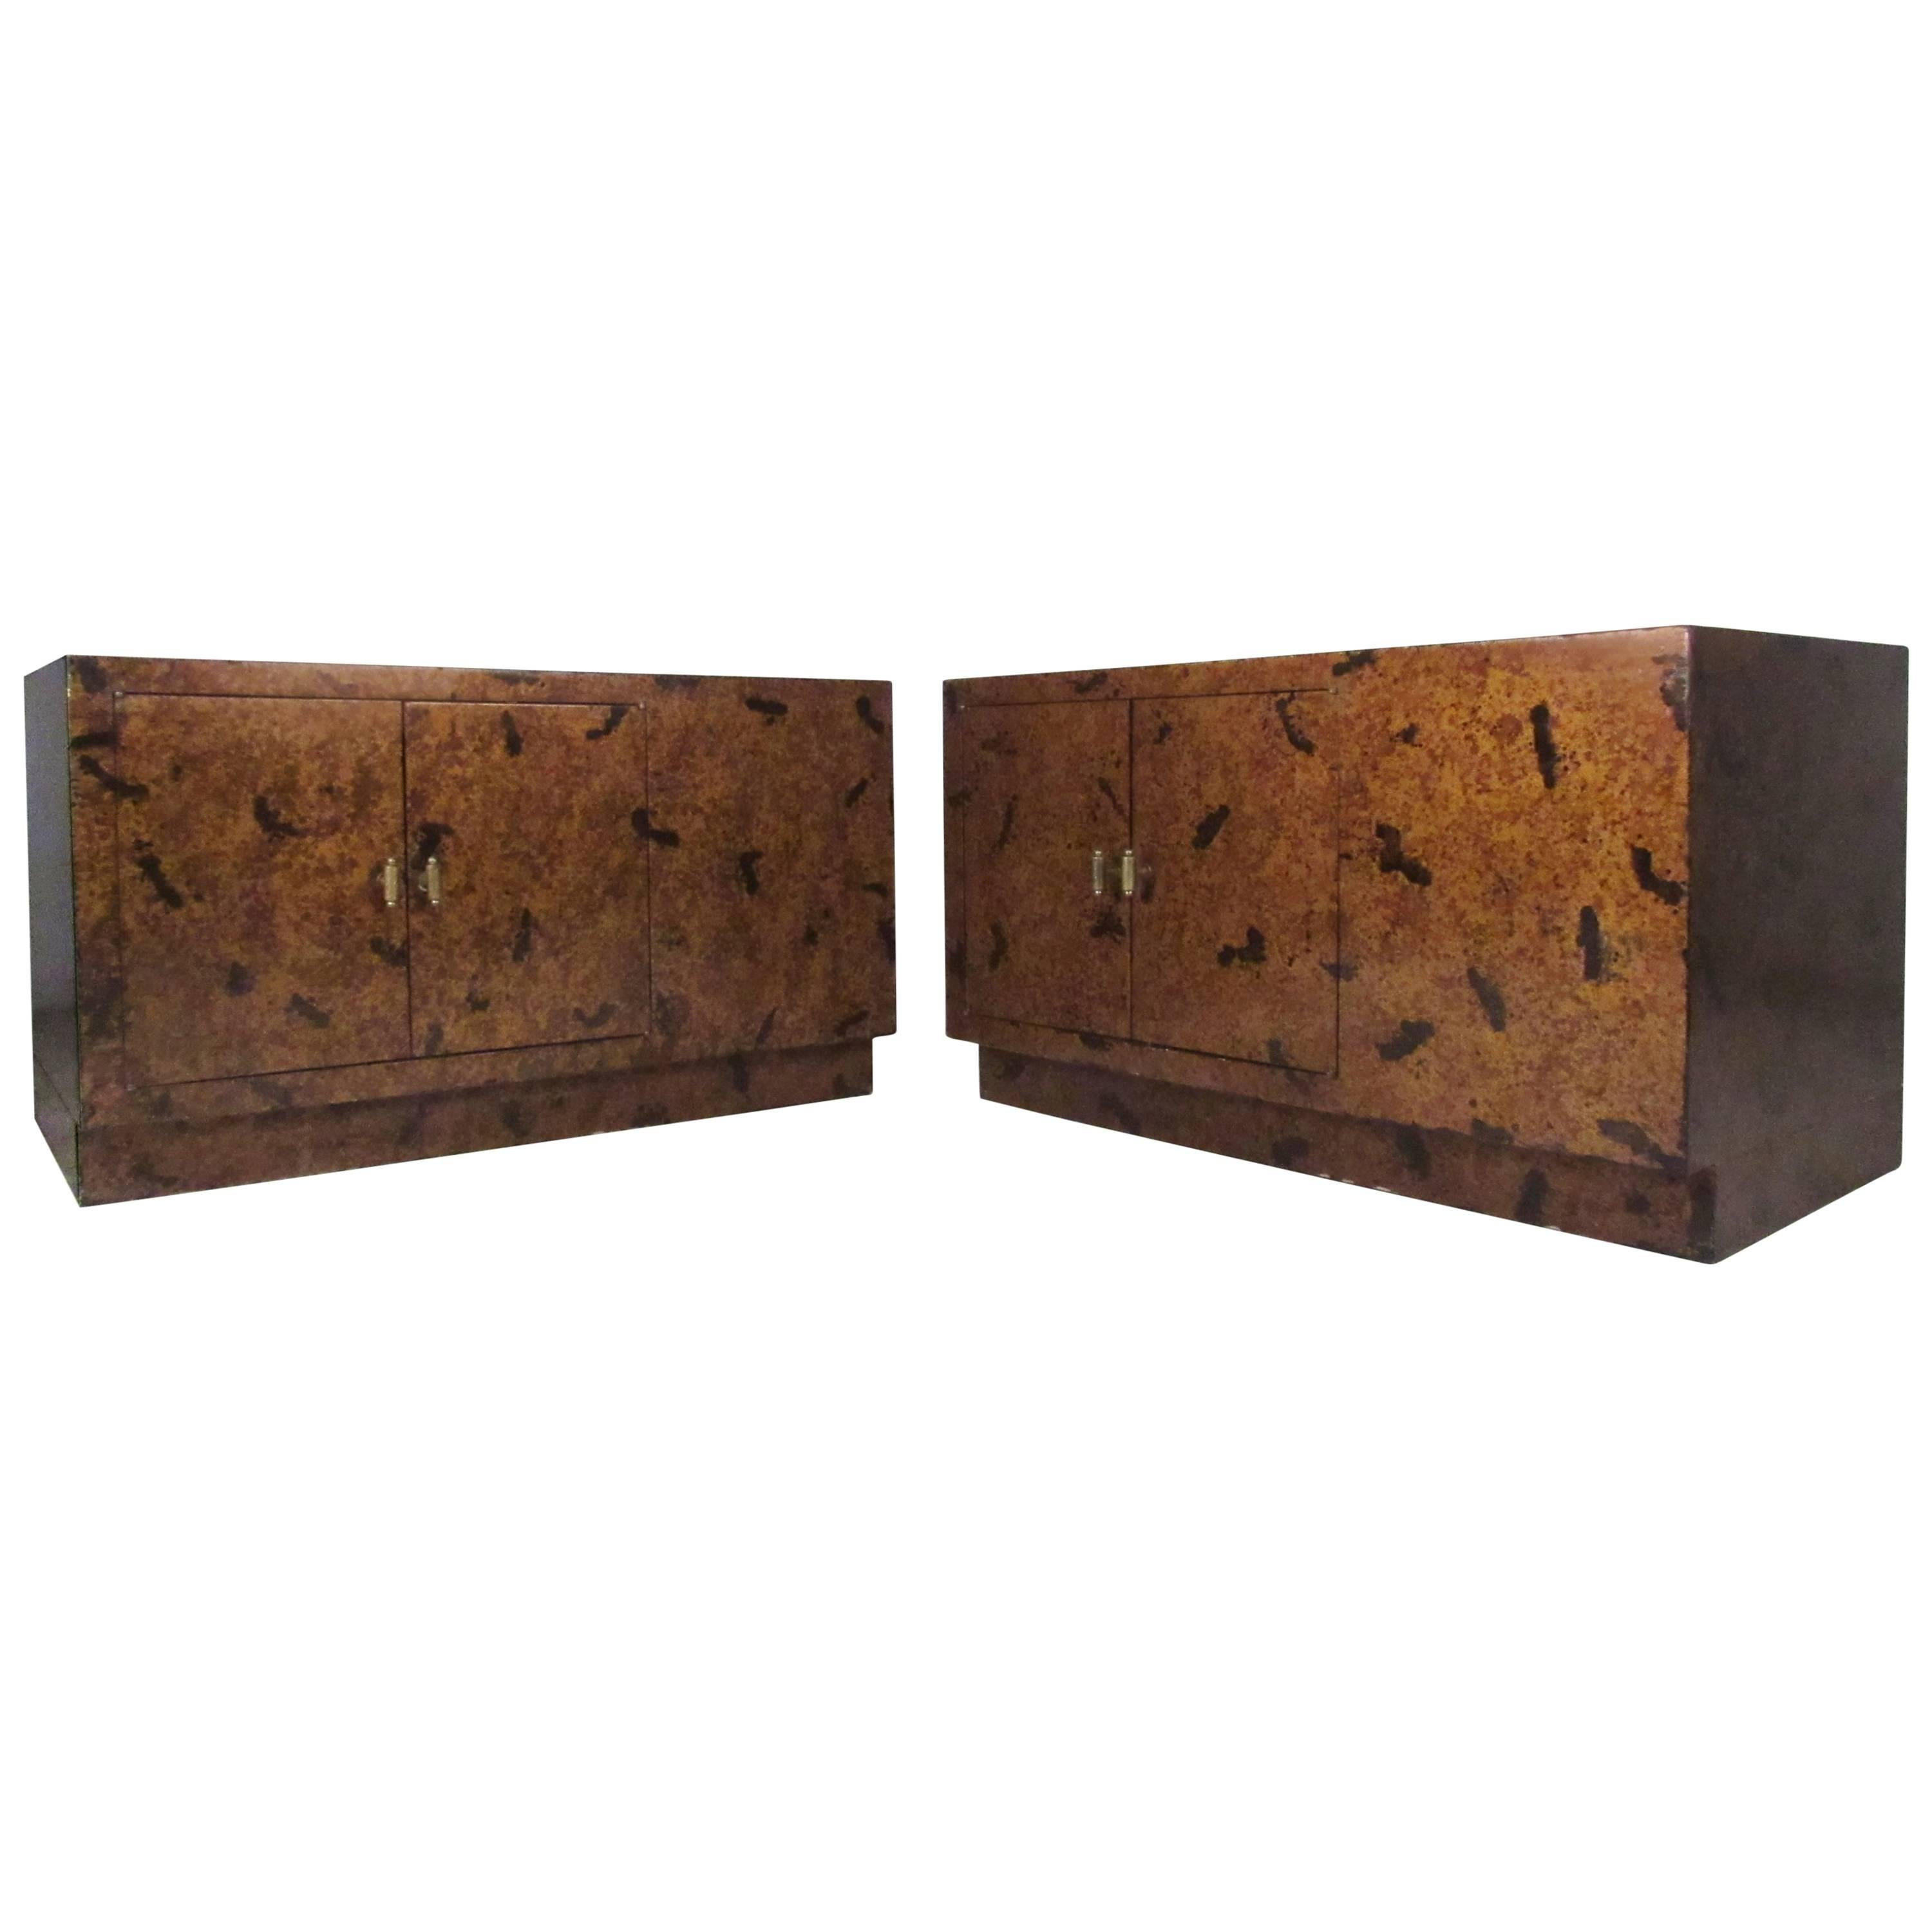 Pair of Tortoise Shell End Tables by Directional